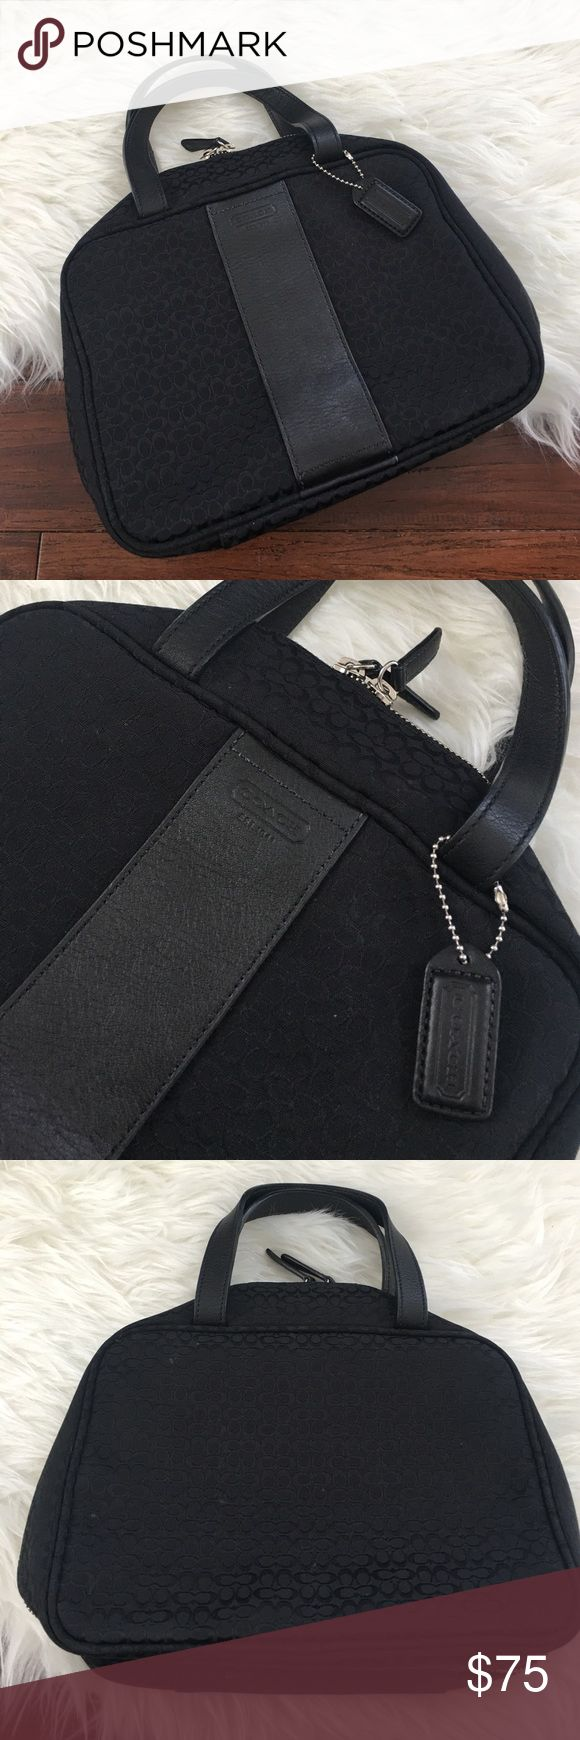 """Coach Black Logo Handbag Cosmetic Carry Bag Excellent used condition. Used only a few times. 100% authentic. Some stains are shown in the photos. Should have no problem getting them out. Can be used as a carry Handbag or as a travel cosmetic/jewelry case! Leather detailing and straps. Will include the dust bag. 10"""" across, 8"""" tall, and about 4"""" wide. Coach Bags Travel Bags"""